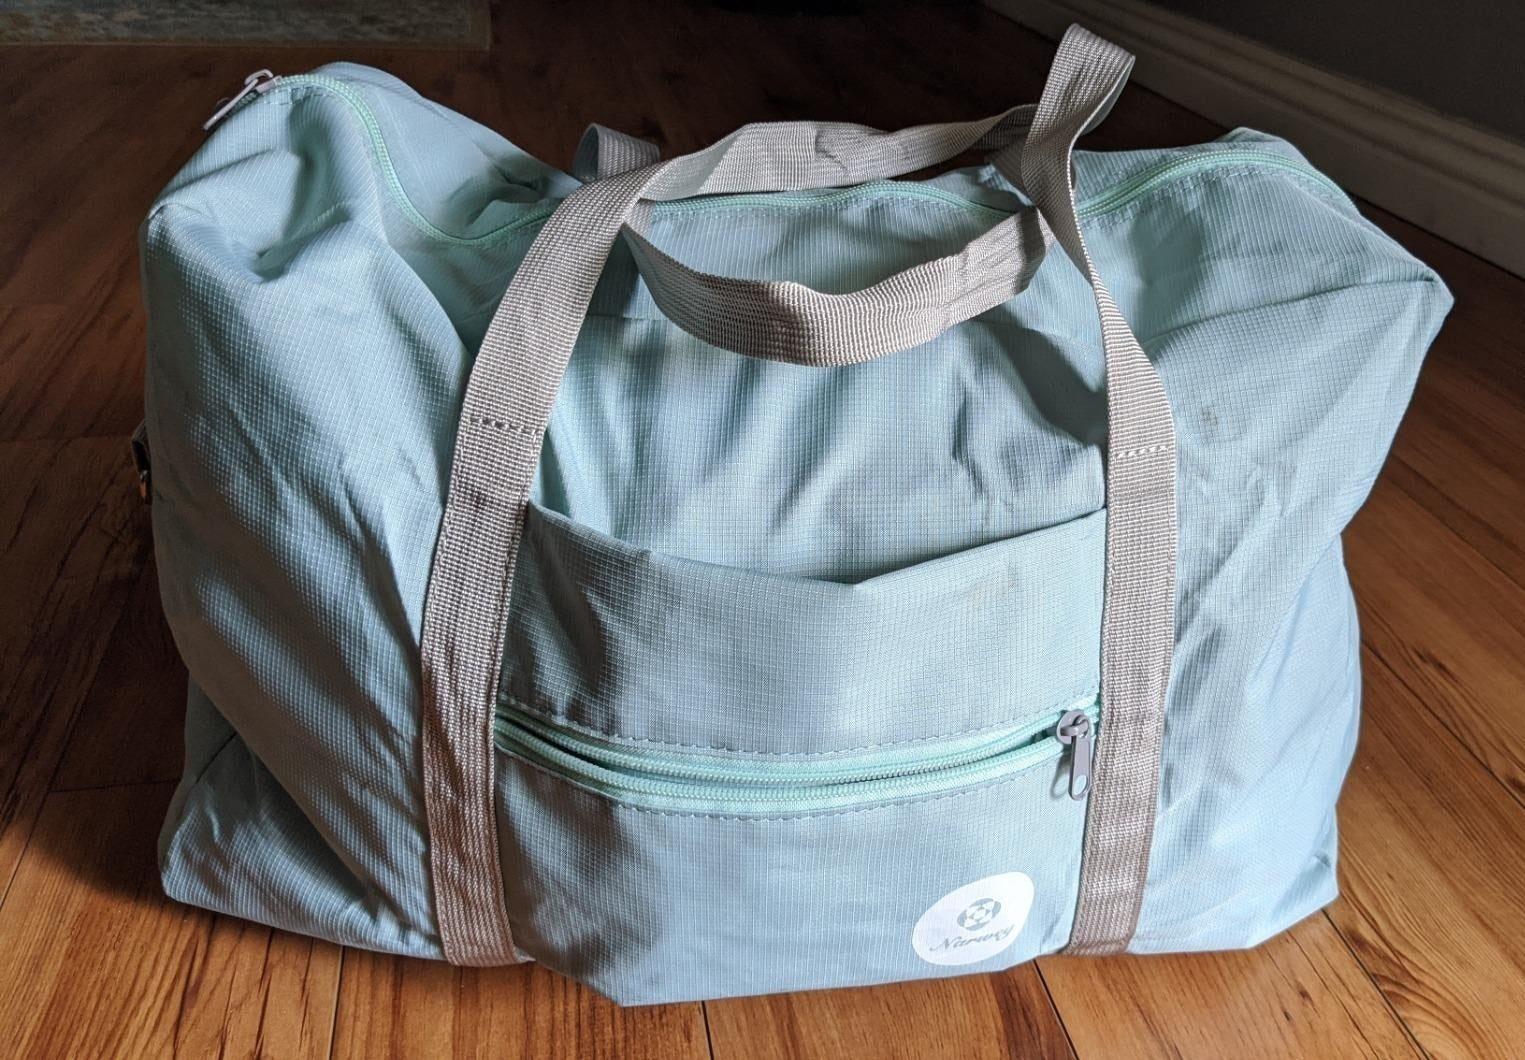 Reviewer photo of the light blue bag with a front pocket and grey straps